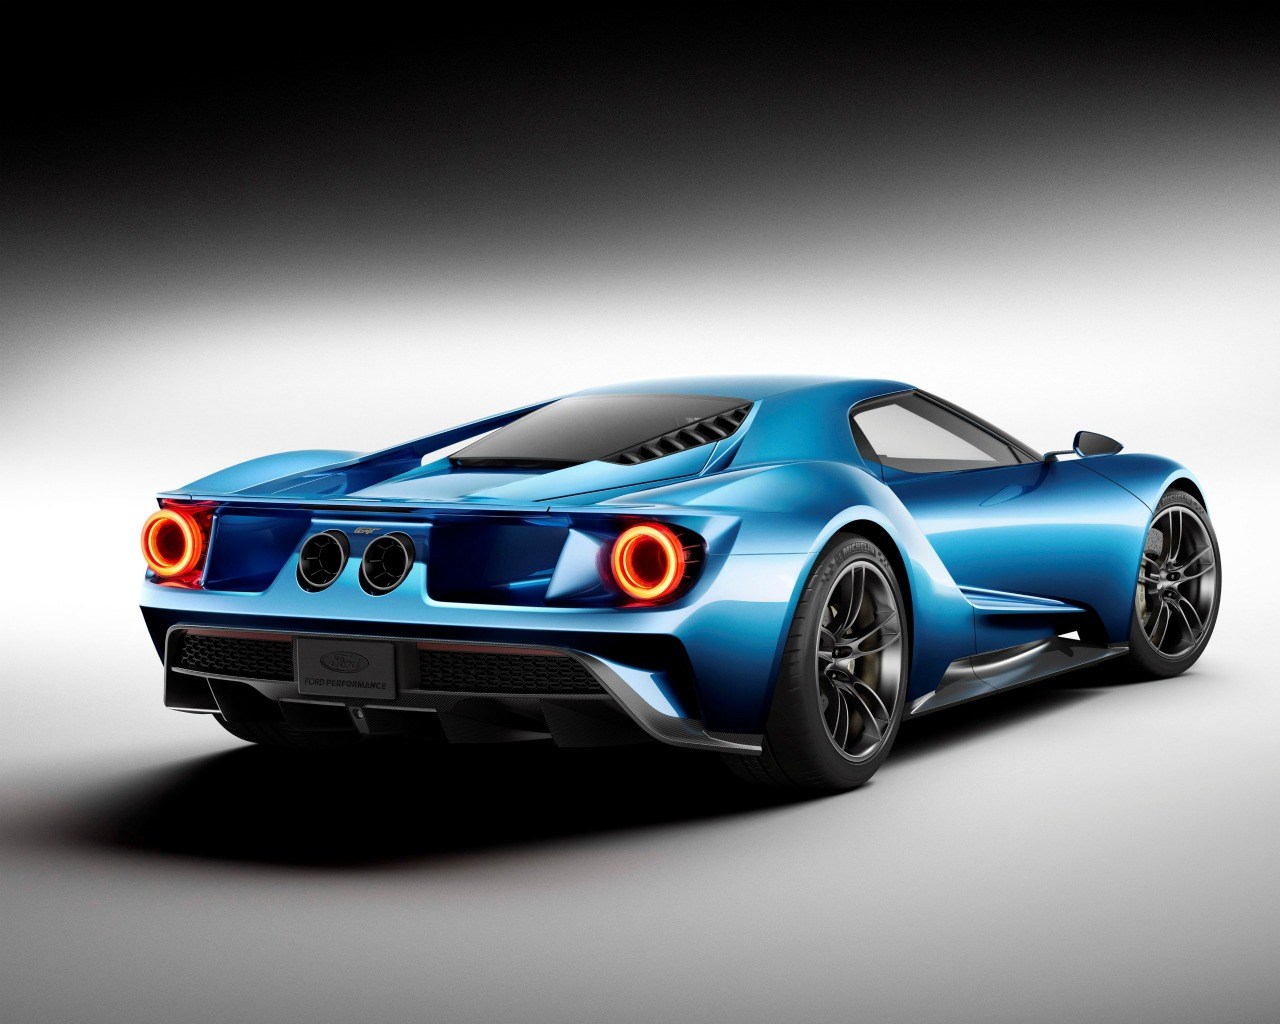 Supercar 2017 Ford GT Car wallpaper 1280x1024 1280x1024